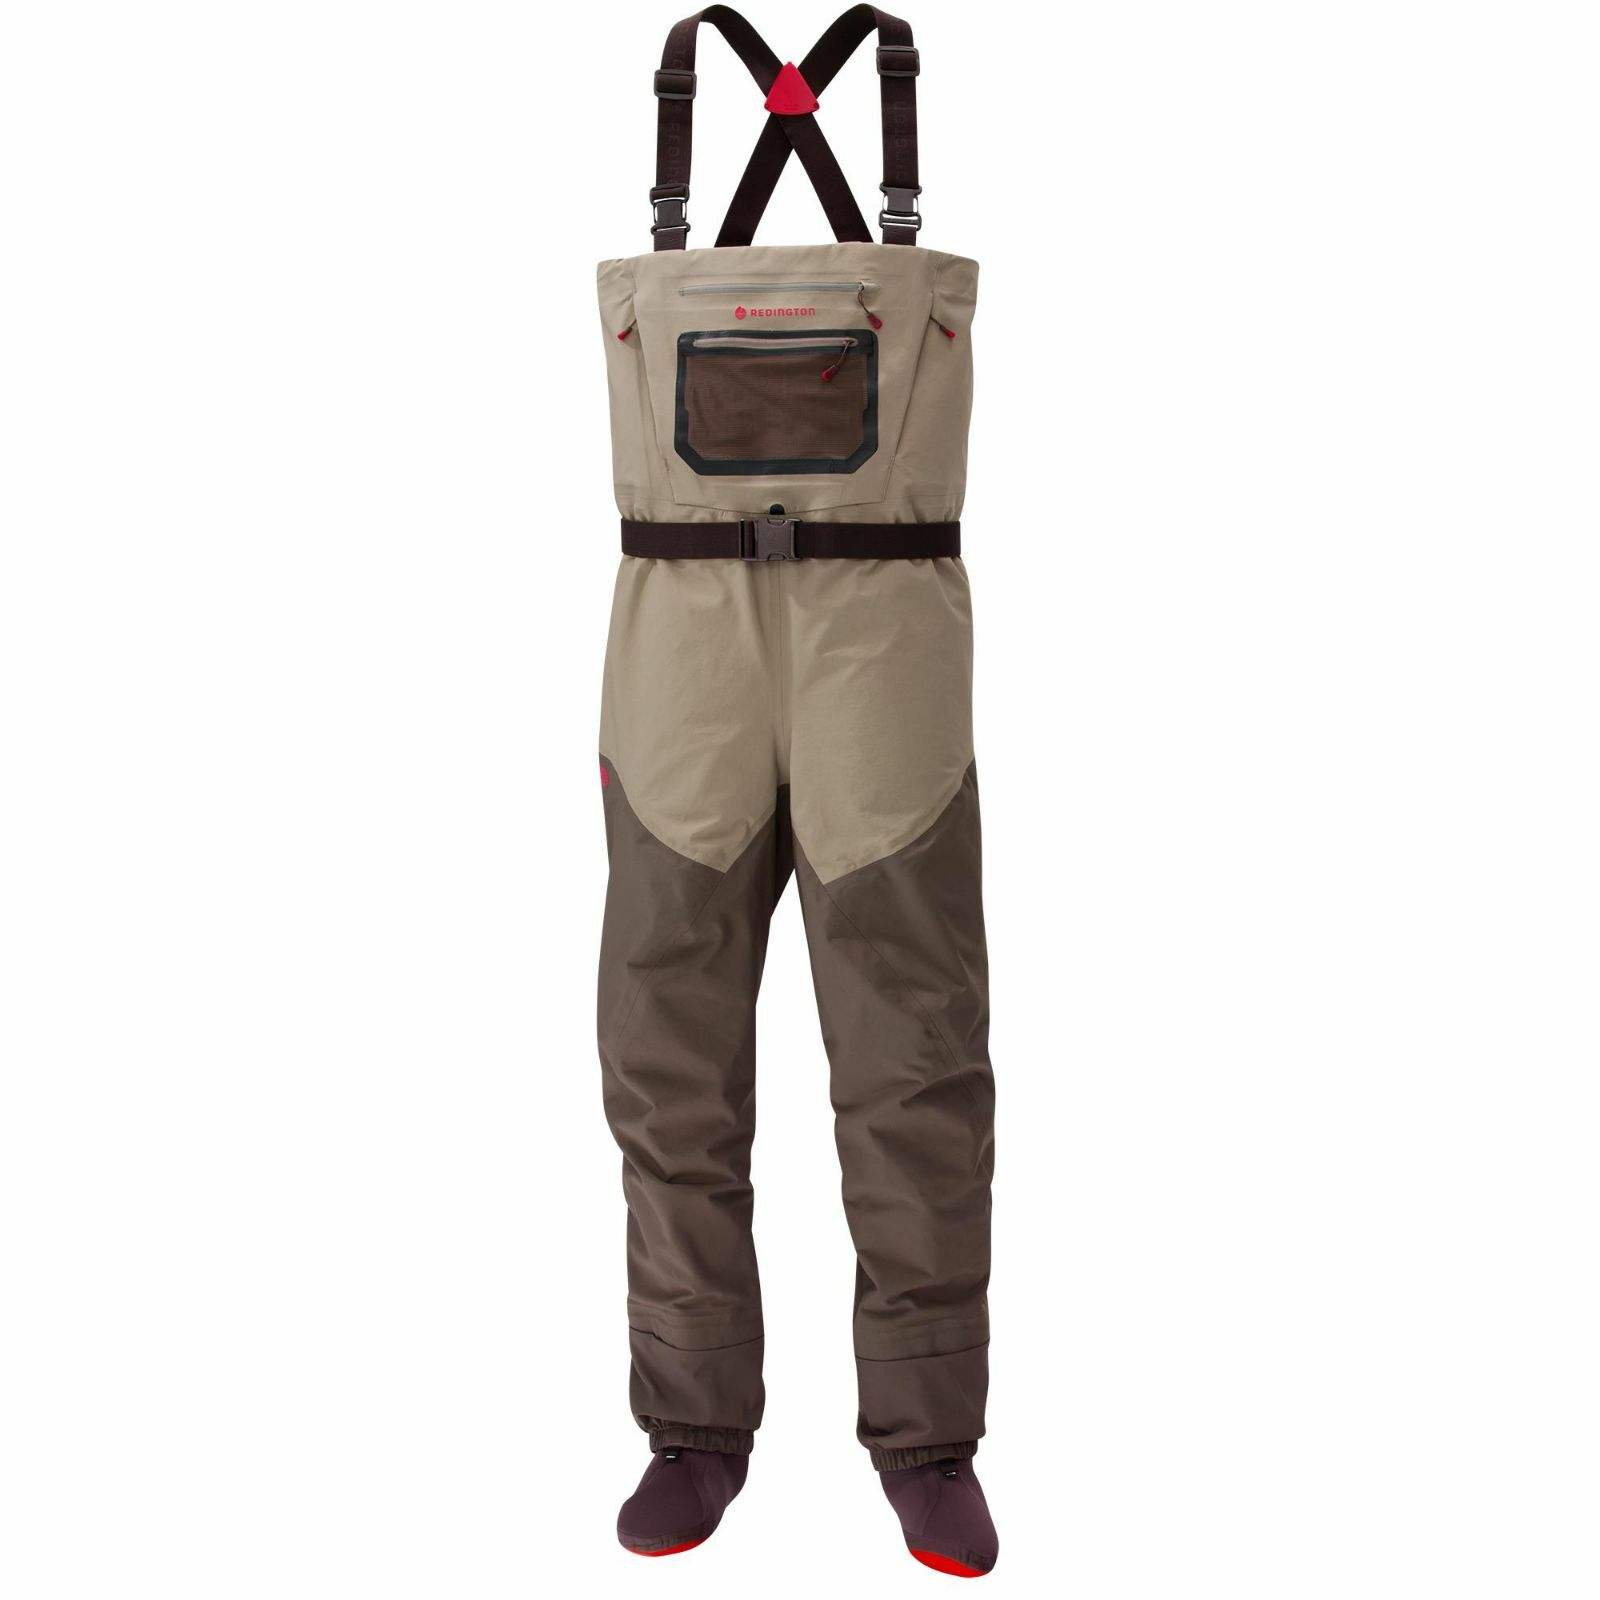 Redington Sonic-Pro HD Waders with no tax and free shipping